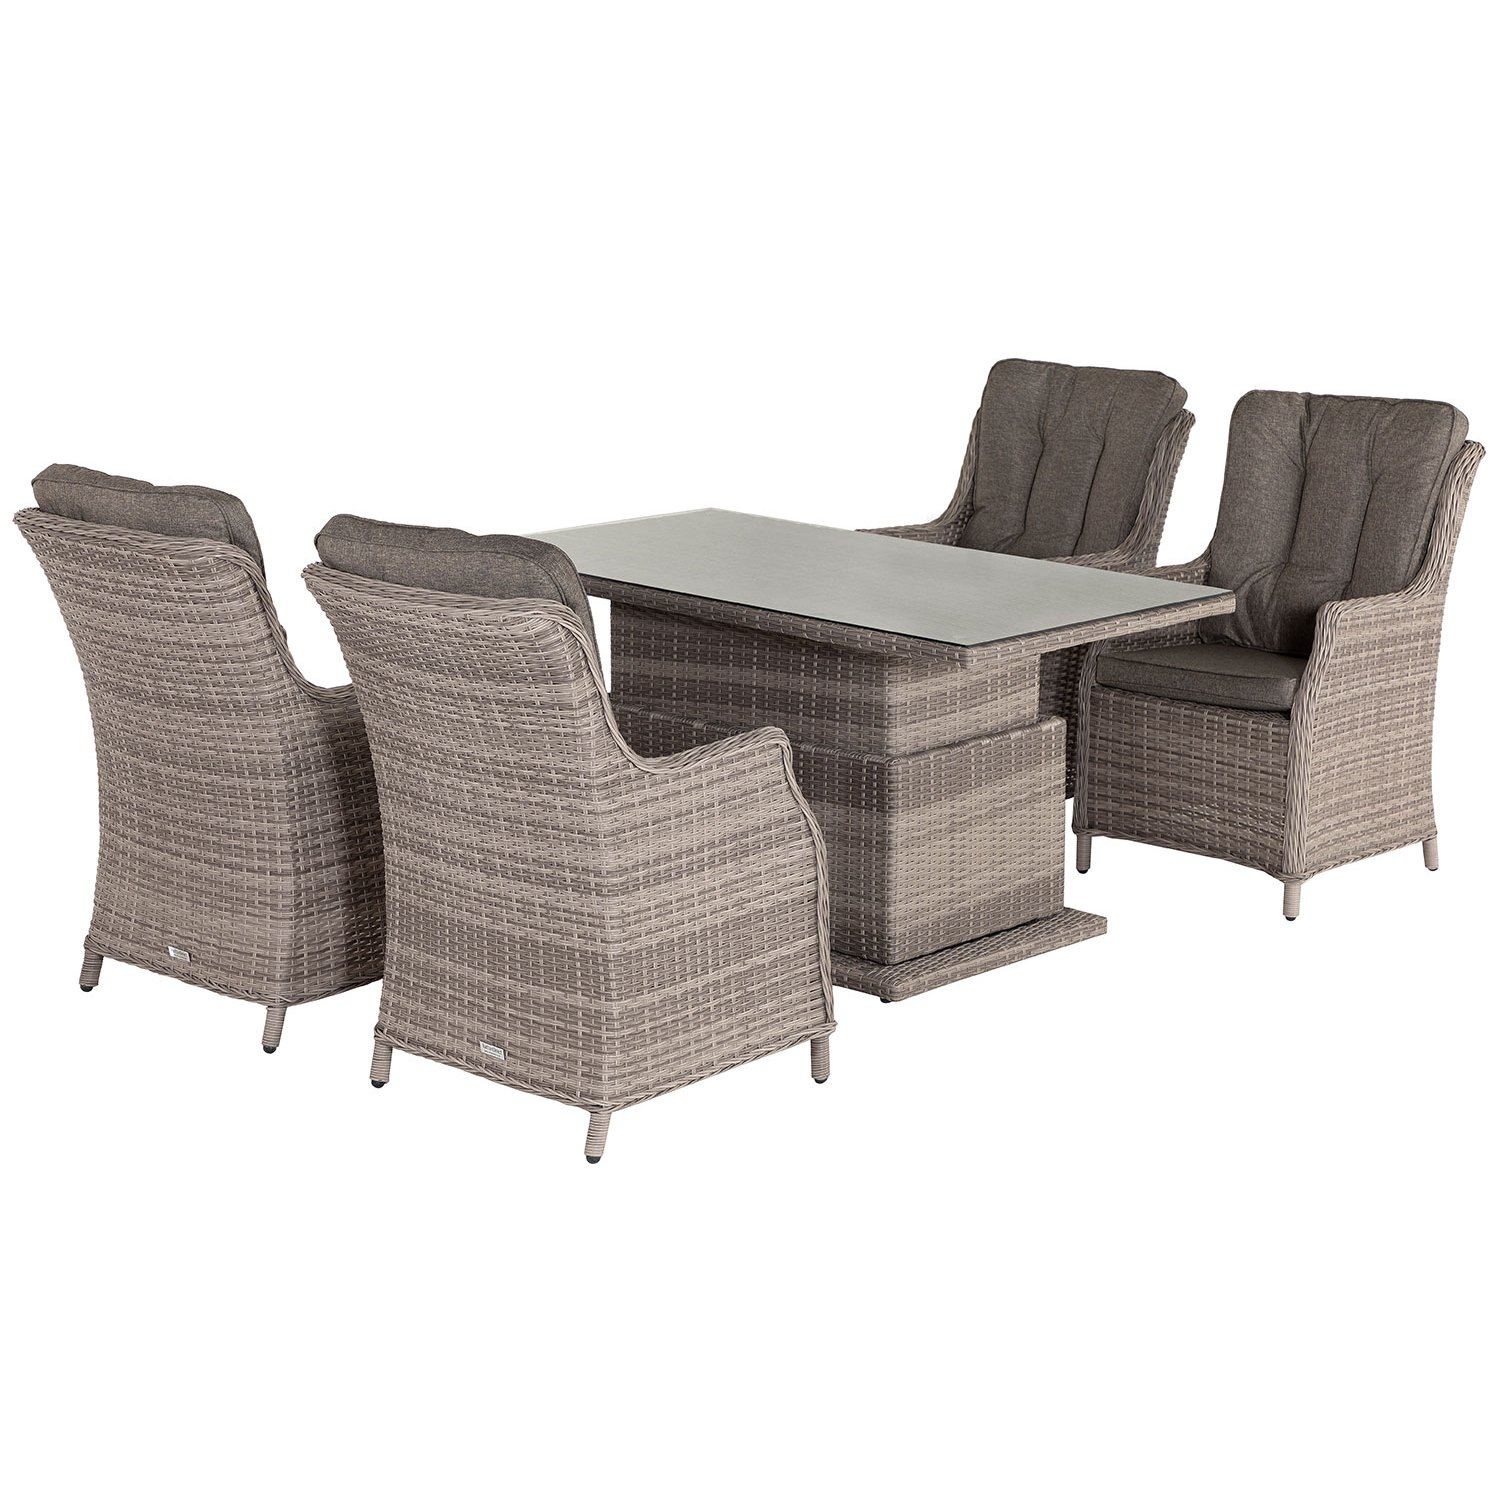 image-Riviera 4 Rattan Garden Dining Chairs and Adjustable Table Set in Grey